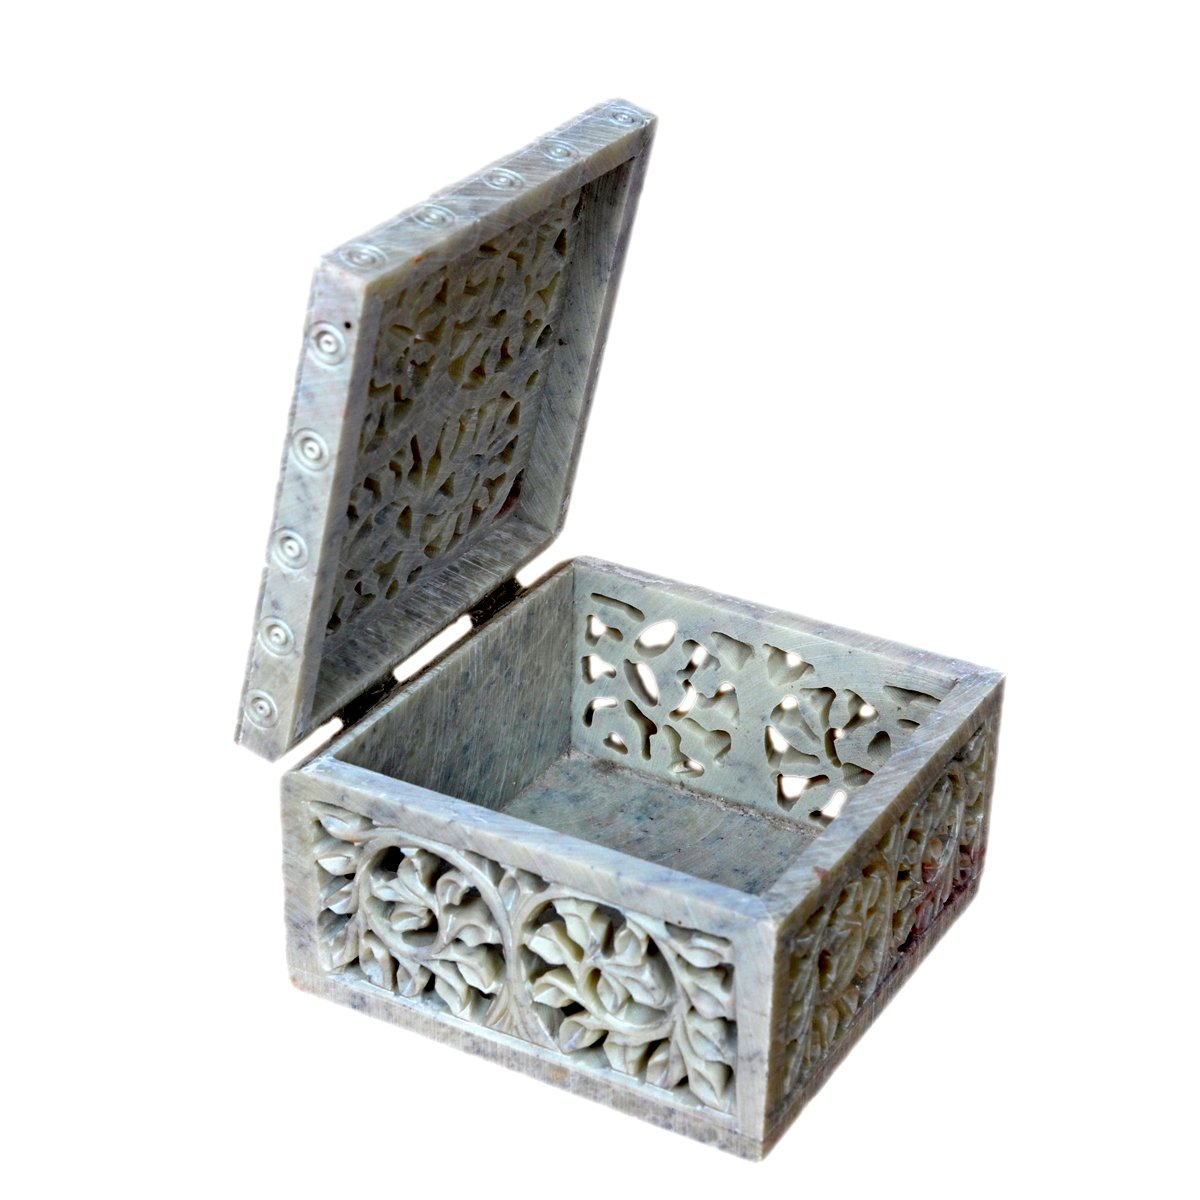 Hashcart Indian Artisan, Handmade & Handcrafted Stone Jewelry Box/Jewelry Storage Organizer/Trinket Jewelry Box/Gift Box with Traditional Design by Hashcart (Image #3)